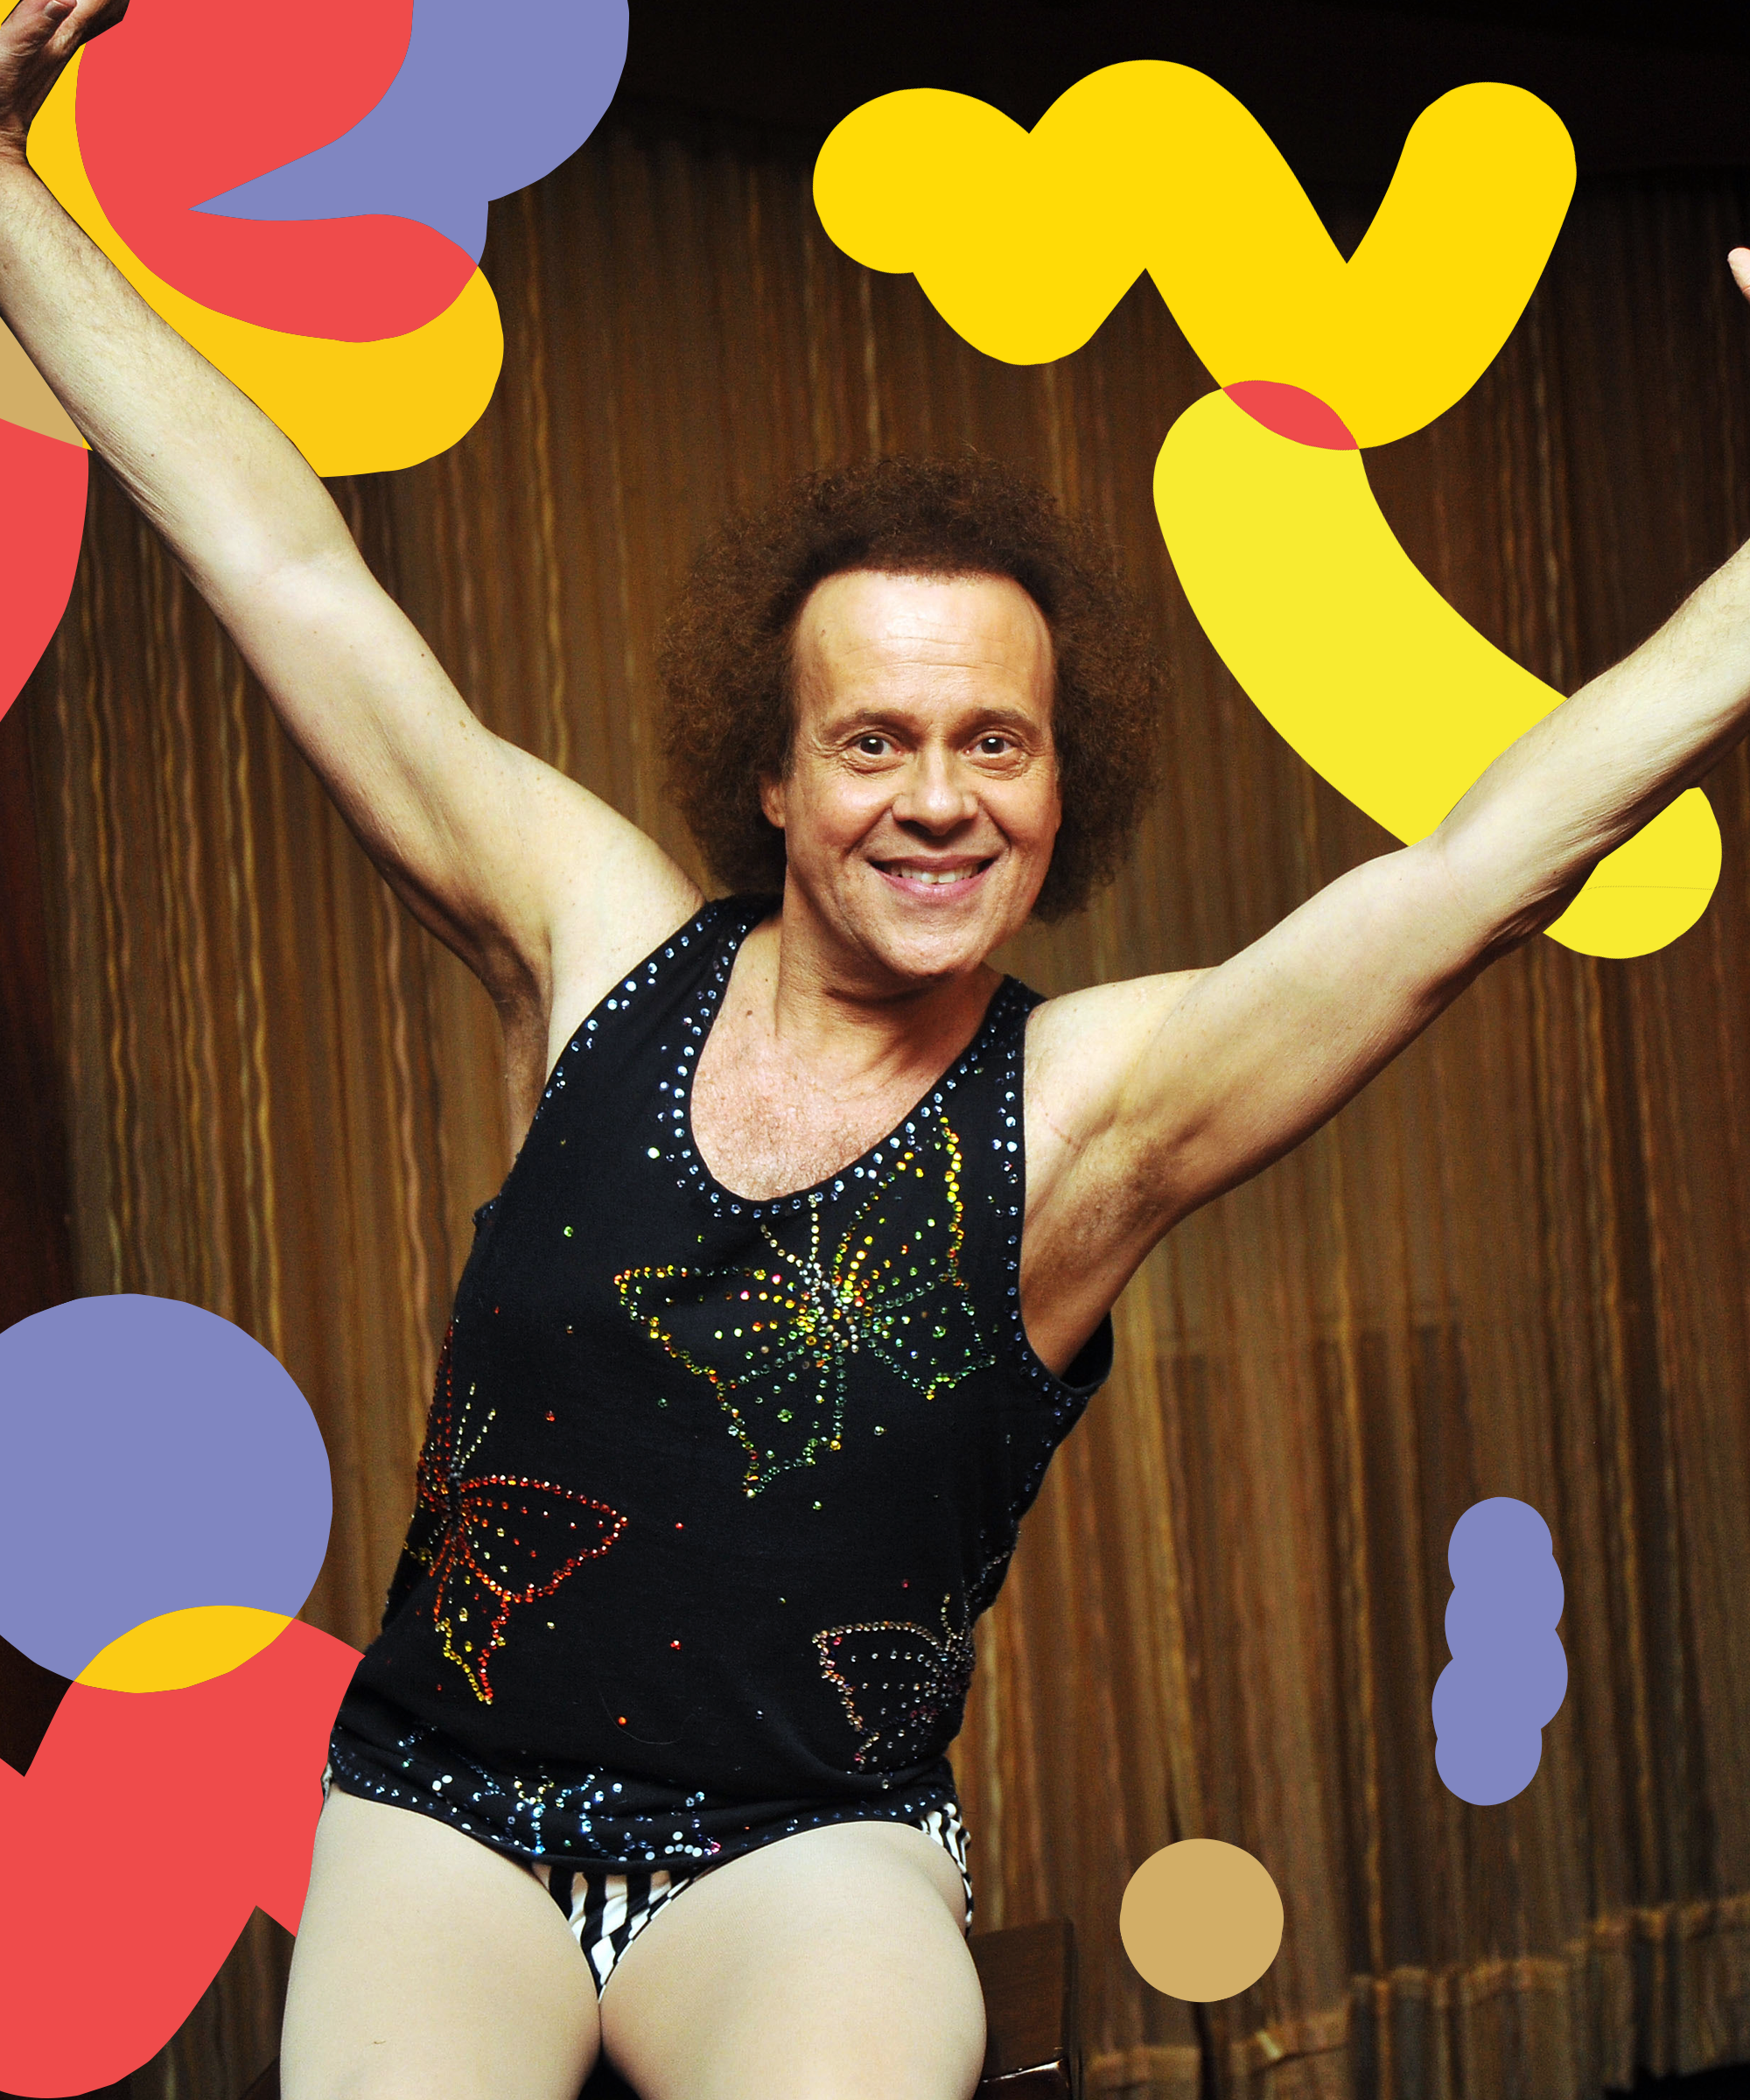 Richard Simmons is 'perfectly fine,' not being held hostage, says LAPD